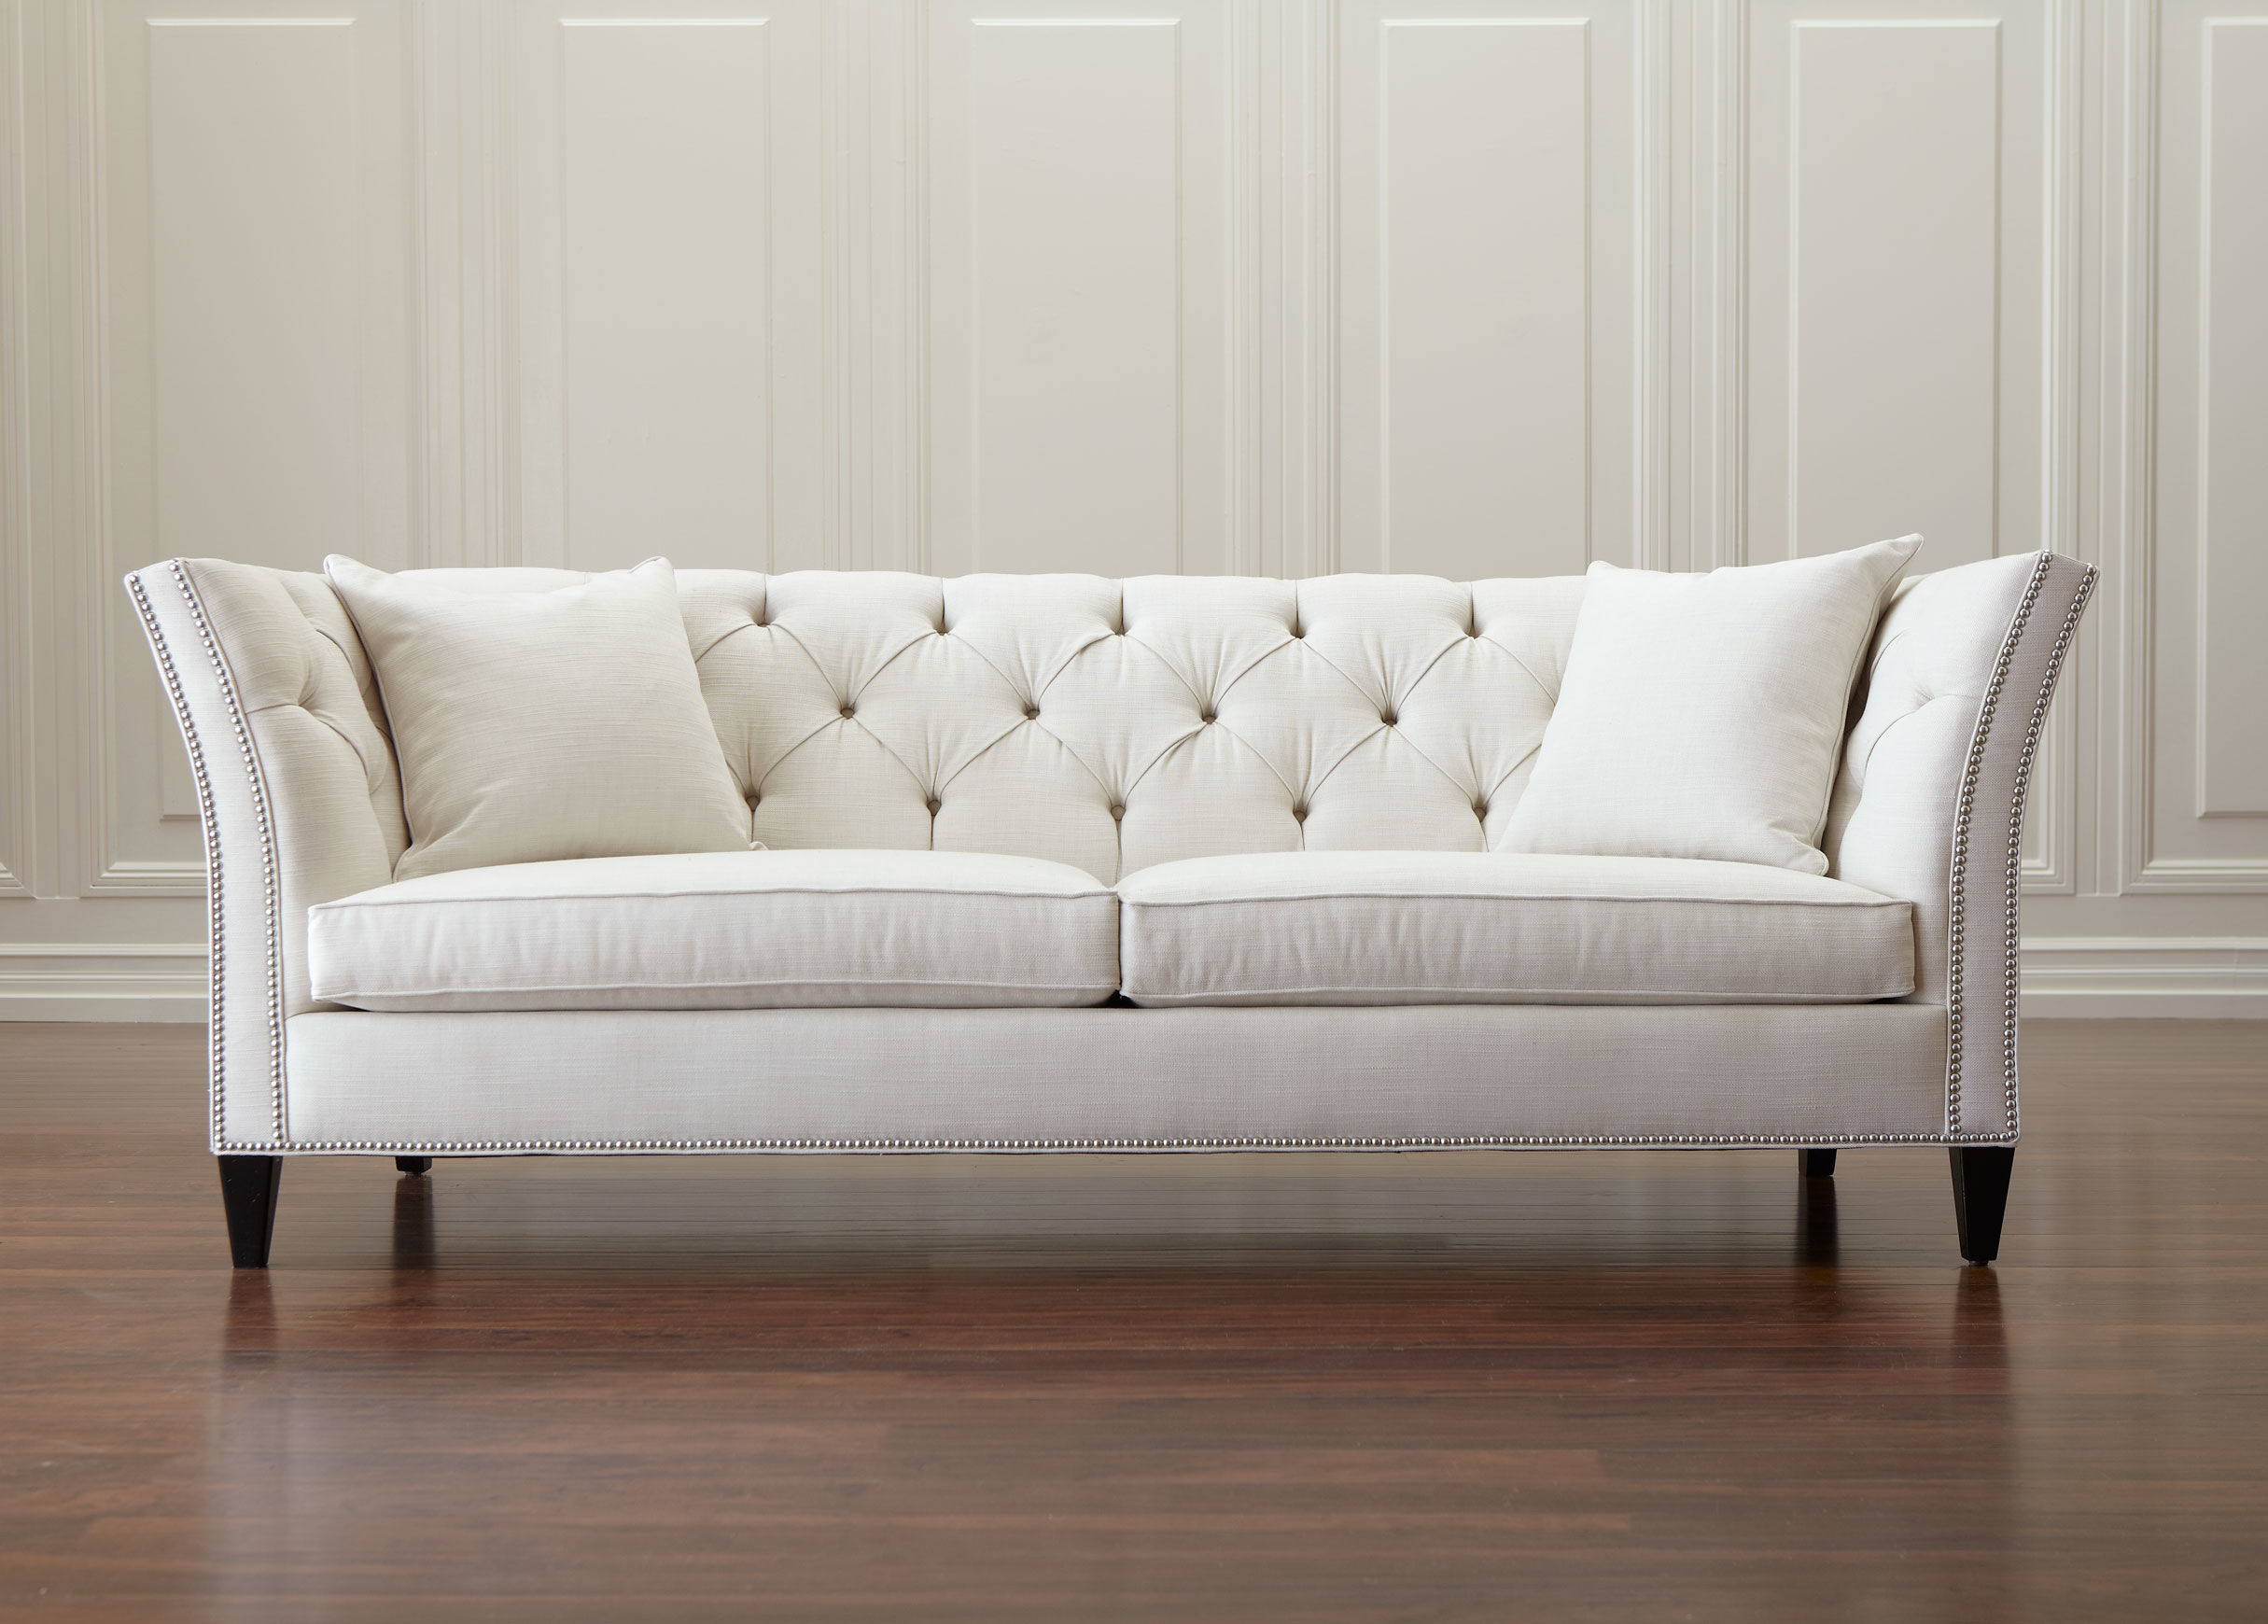 Pottery Barn Loveseat | Ethan Allen Slipcovers | Ethan Allen Couch